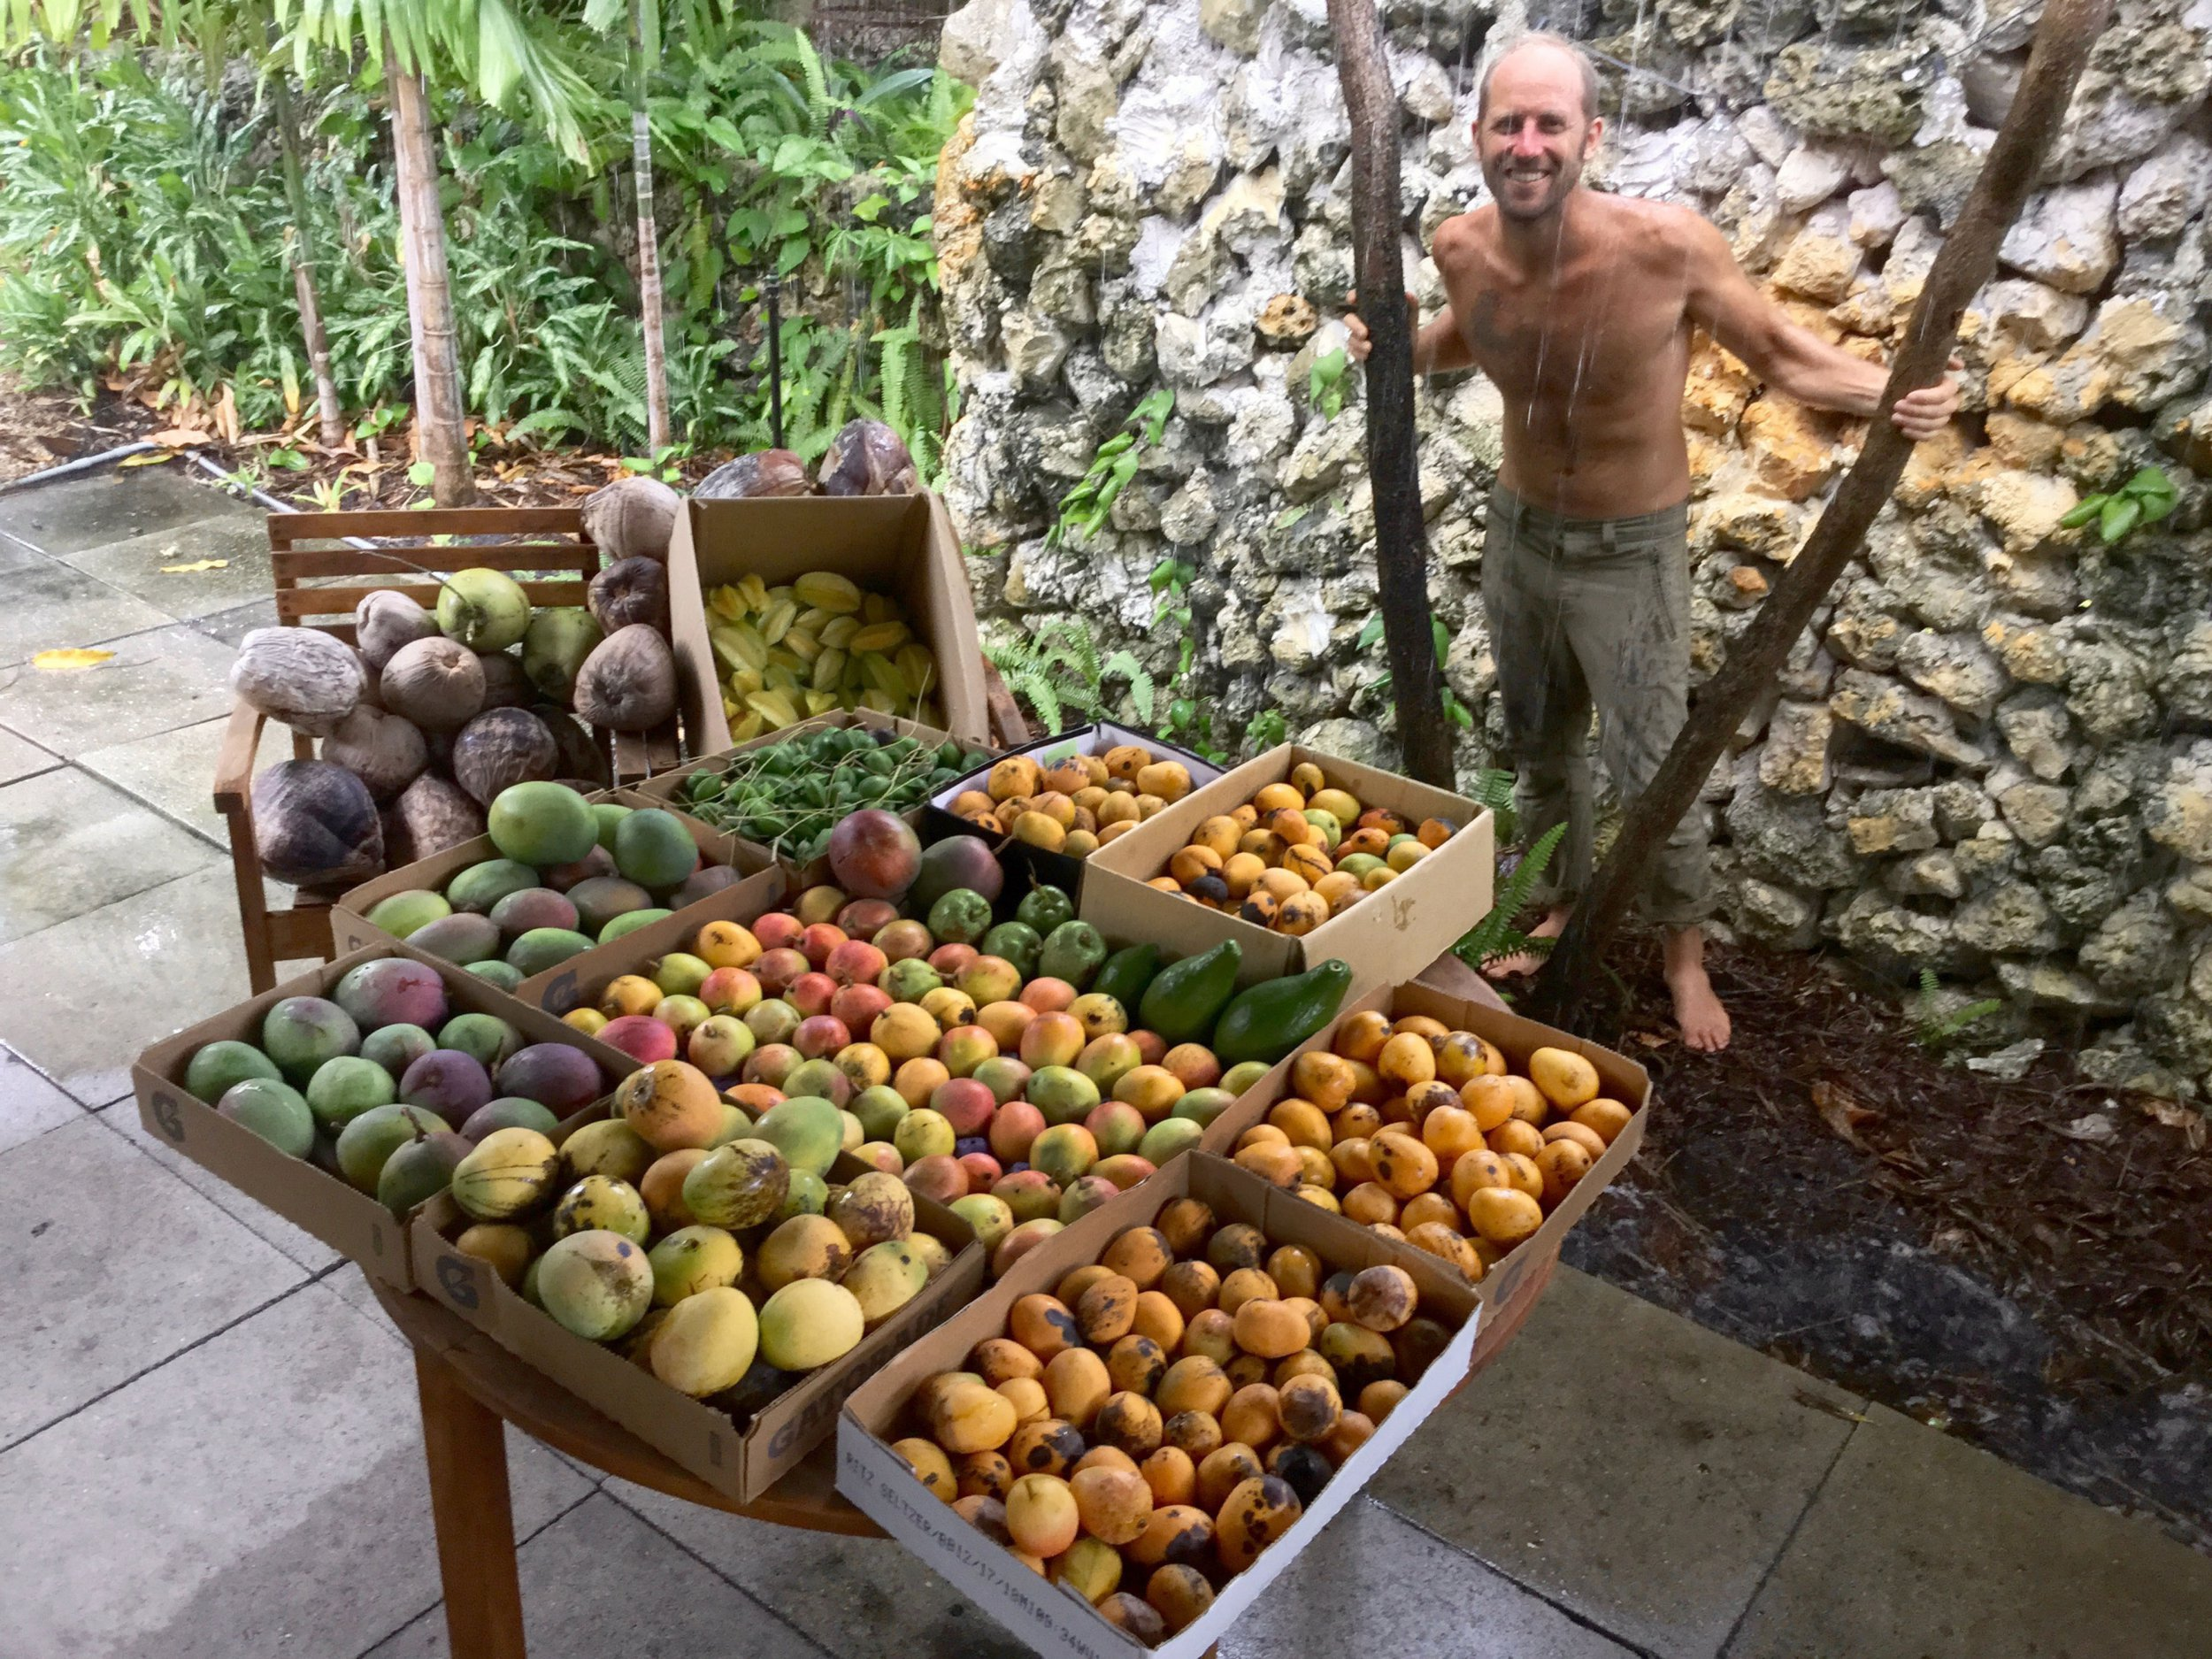 PIC BY Rob Greenfield/ CATERS NEWS (PICTURED Rob Greenfield foraging fruit in a city.) An eco-warrior built a residence for underneath ?1200 and usually grew and foraged his food for a whole year to enthuse people to rethink their food habits. On Nov 10 2018, Rob Greenfield, 33, set himself a plea to live for one year though shopping any of his groceries - instead, he had to grow and fodder it all himself. The challenge, that a environmental romantic finished yesterday, saw him build an whole residence from blemish - costing usually ?1,160 - and branch a land surrounding it into his possess fruit and veg garden. SEE CATERS COPY.